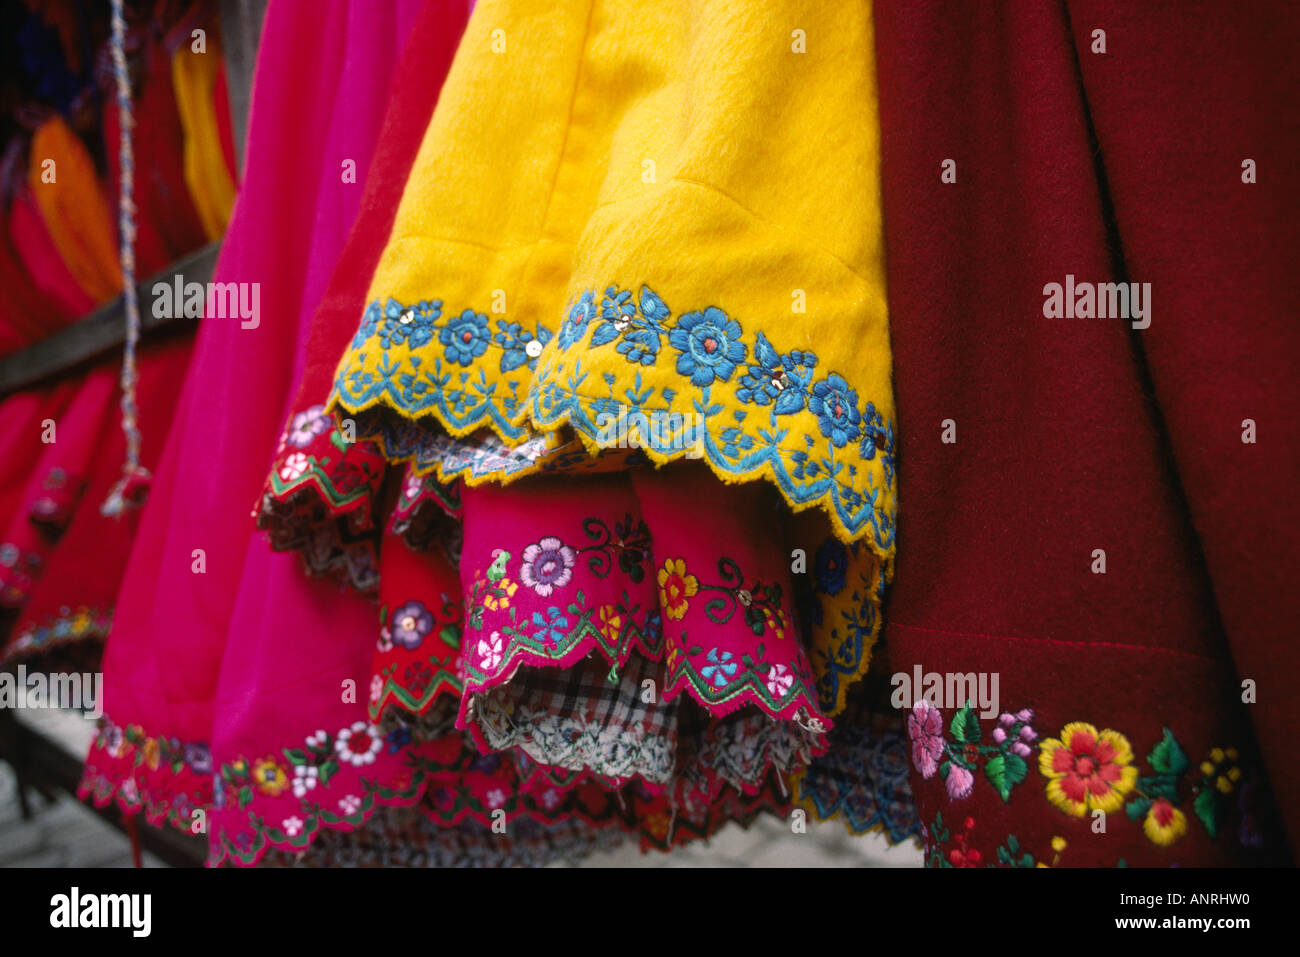 Ecuador Gualaceo market textiles detail of embroidered skirts - Stock Image